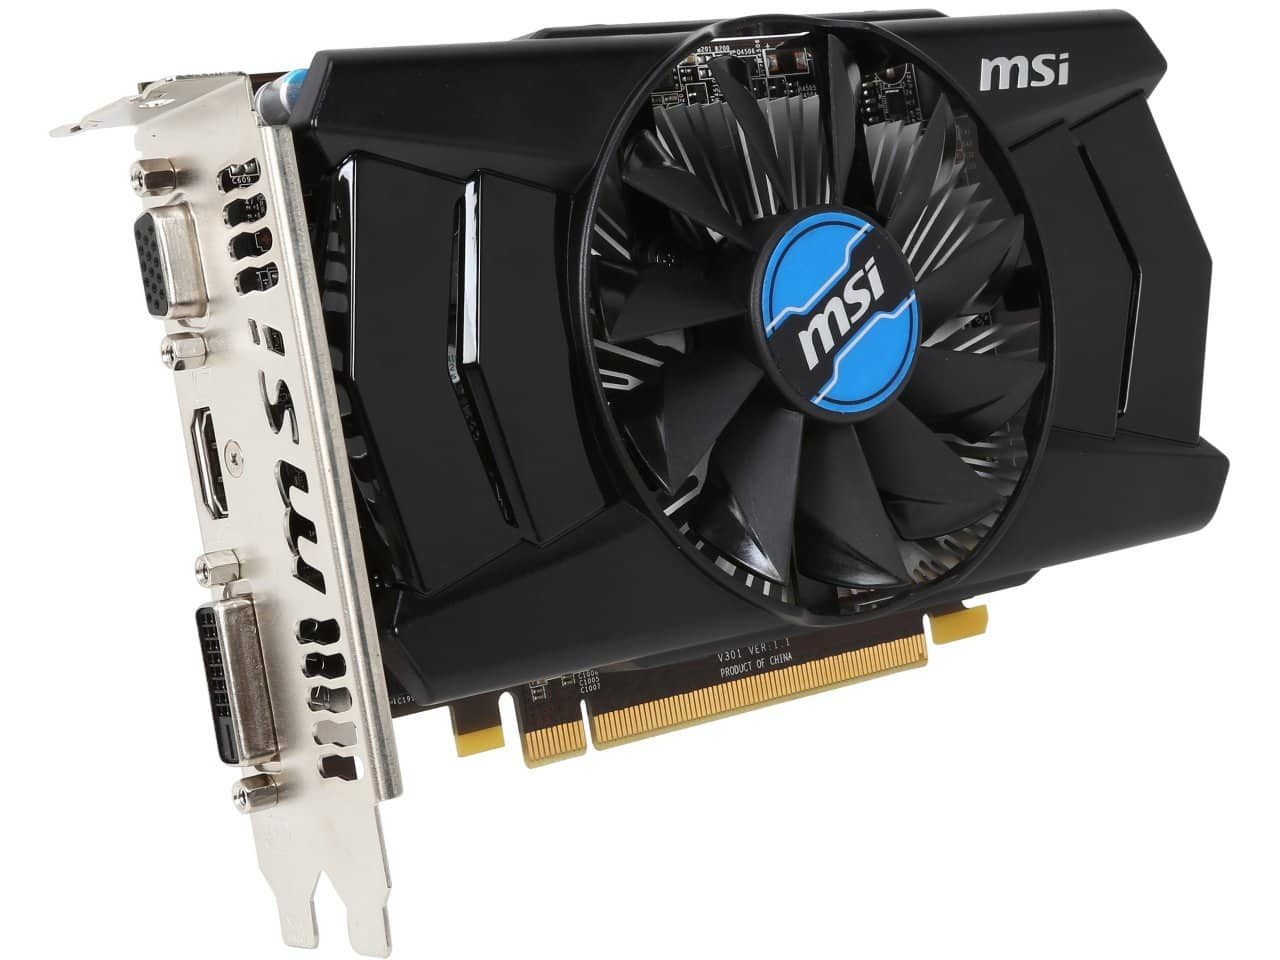 MSI Radeon R7 250 2 GB 128-Bit DDR3 PCI-E 3.0 Video Card for $39.99 AR or Brother DCP-L2540DW 2400x600 DPI Wireless Monochrome Multifunction Laser Printer for $99.99 @ Newegg.com